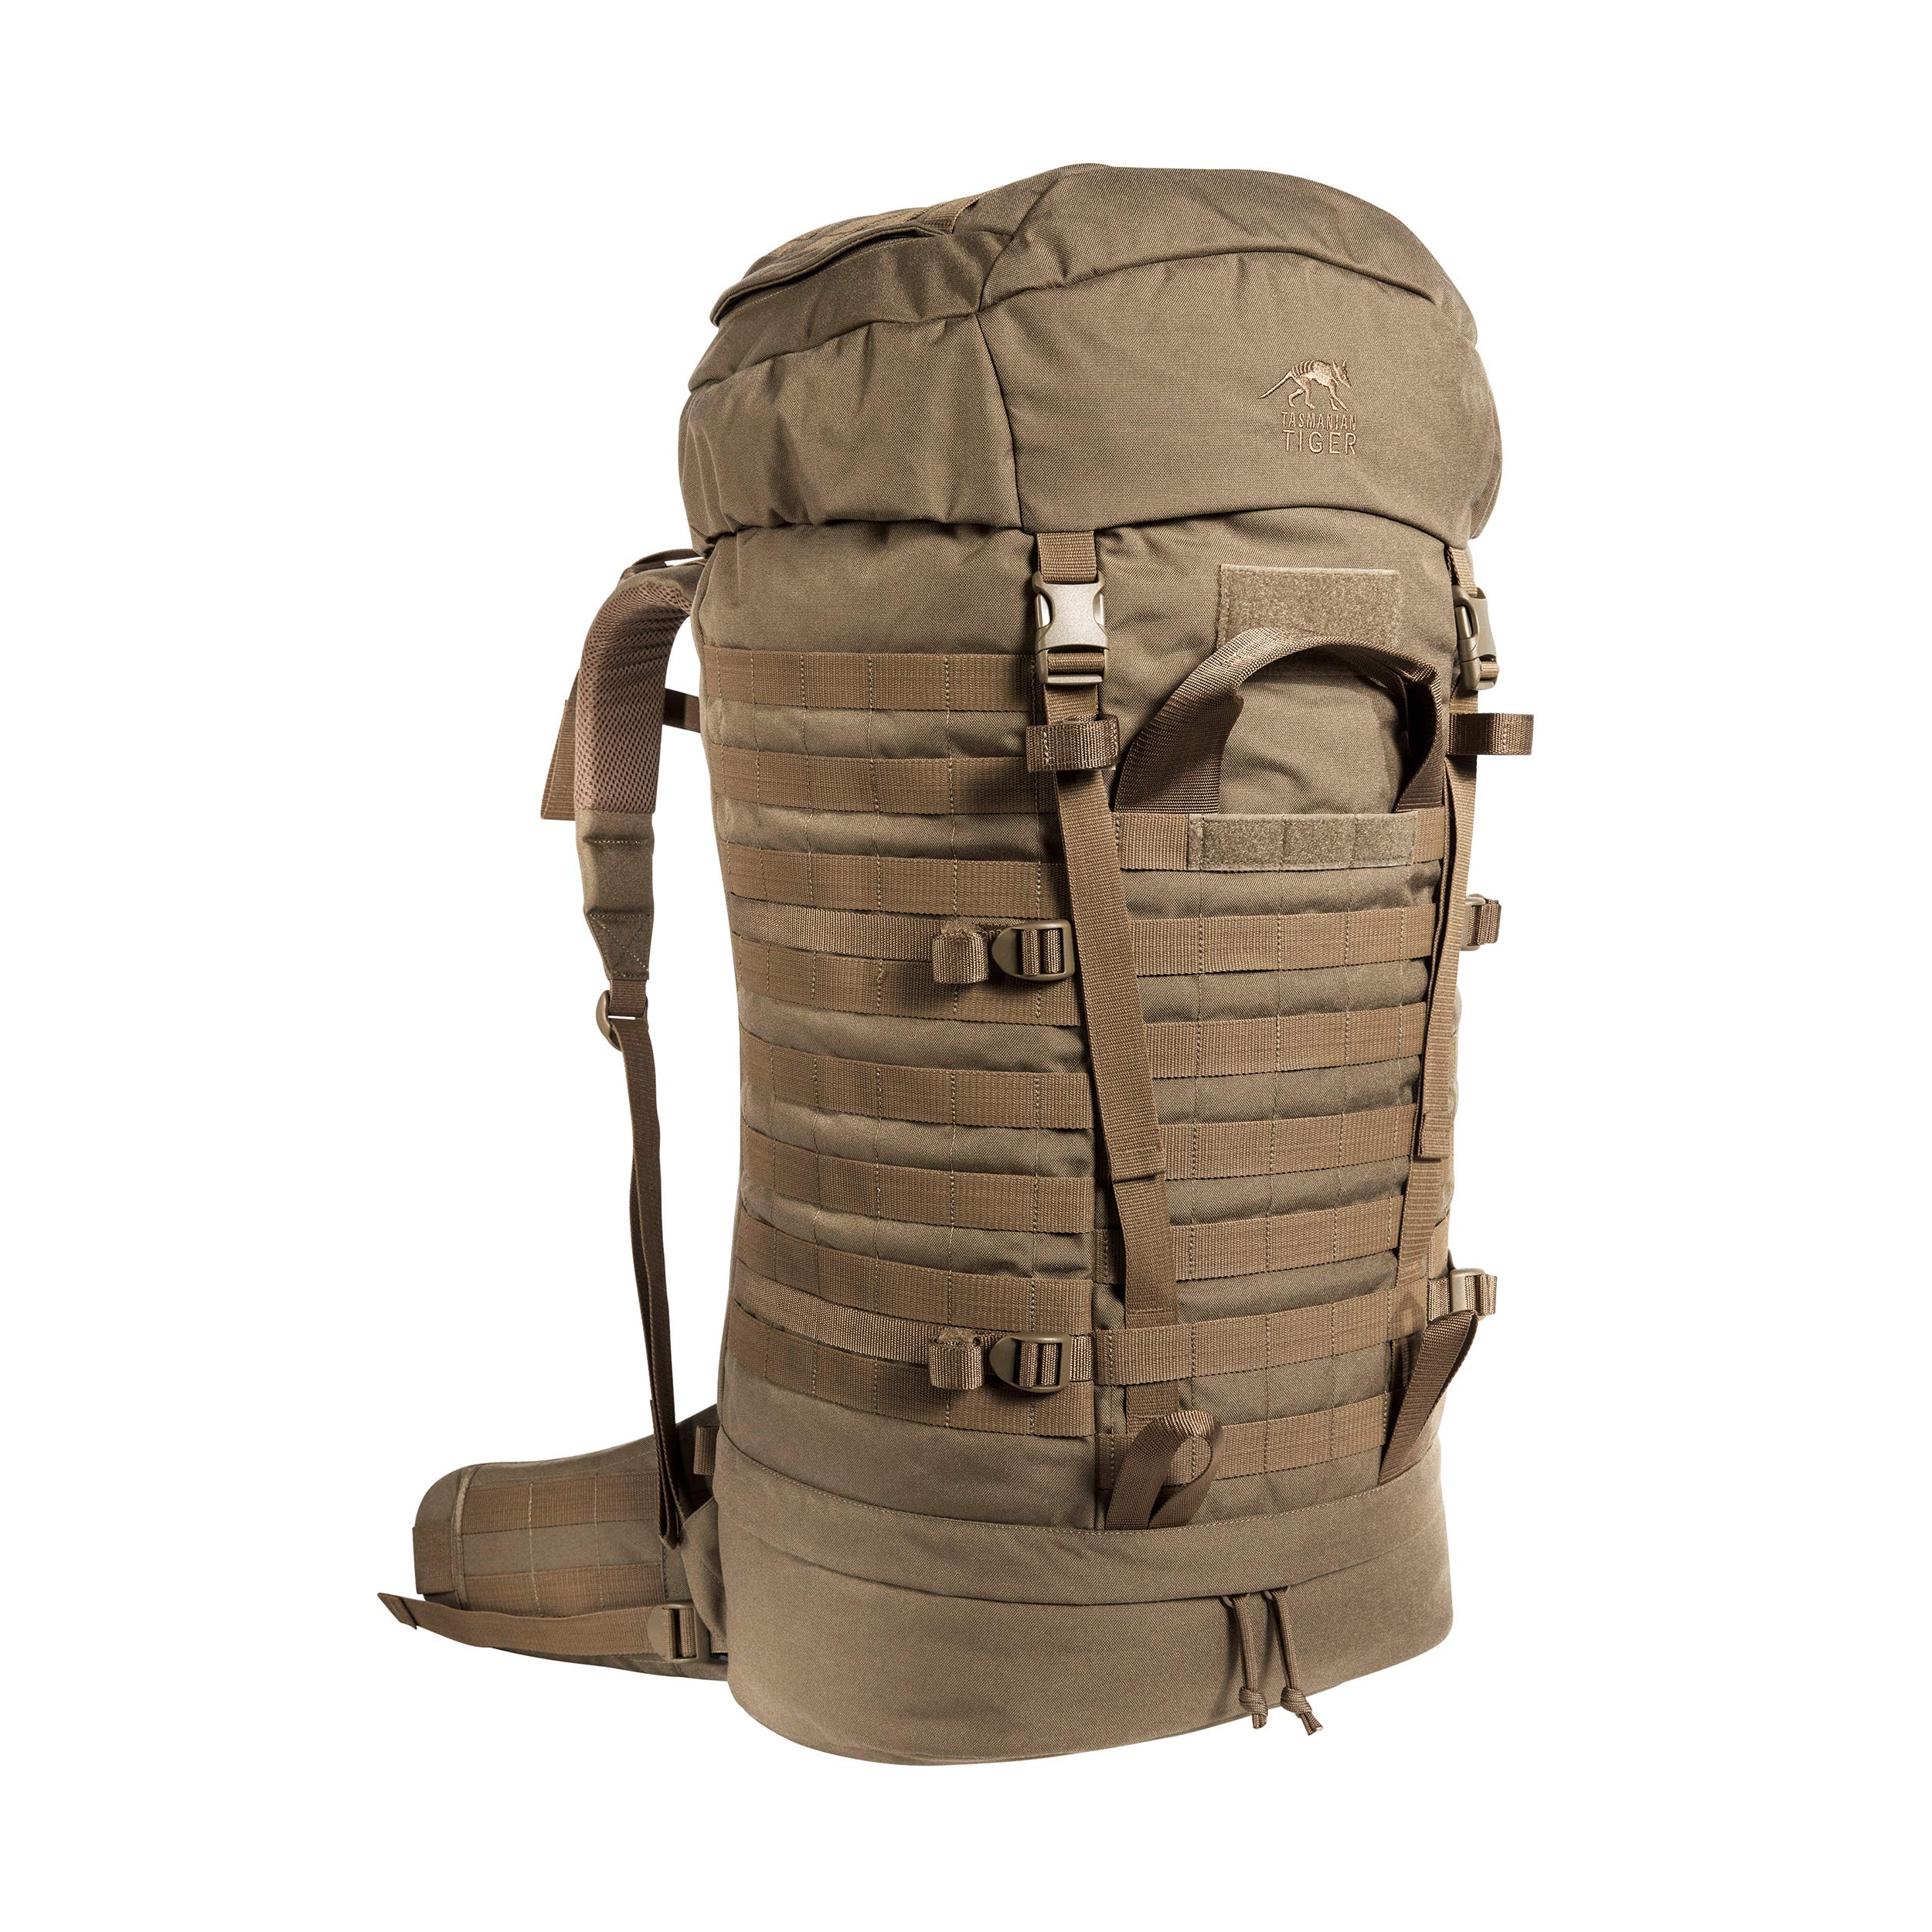 Tasmanian Tiger Field Pack Mk II, 75L Long Range Tactical Backpack with MOLLE System, YKK RC Zippers